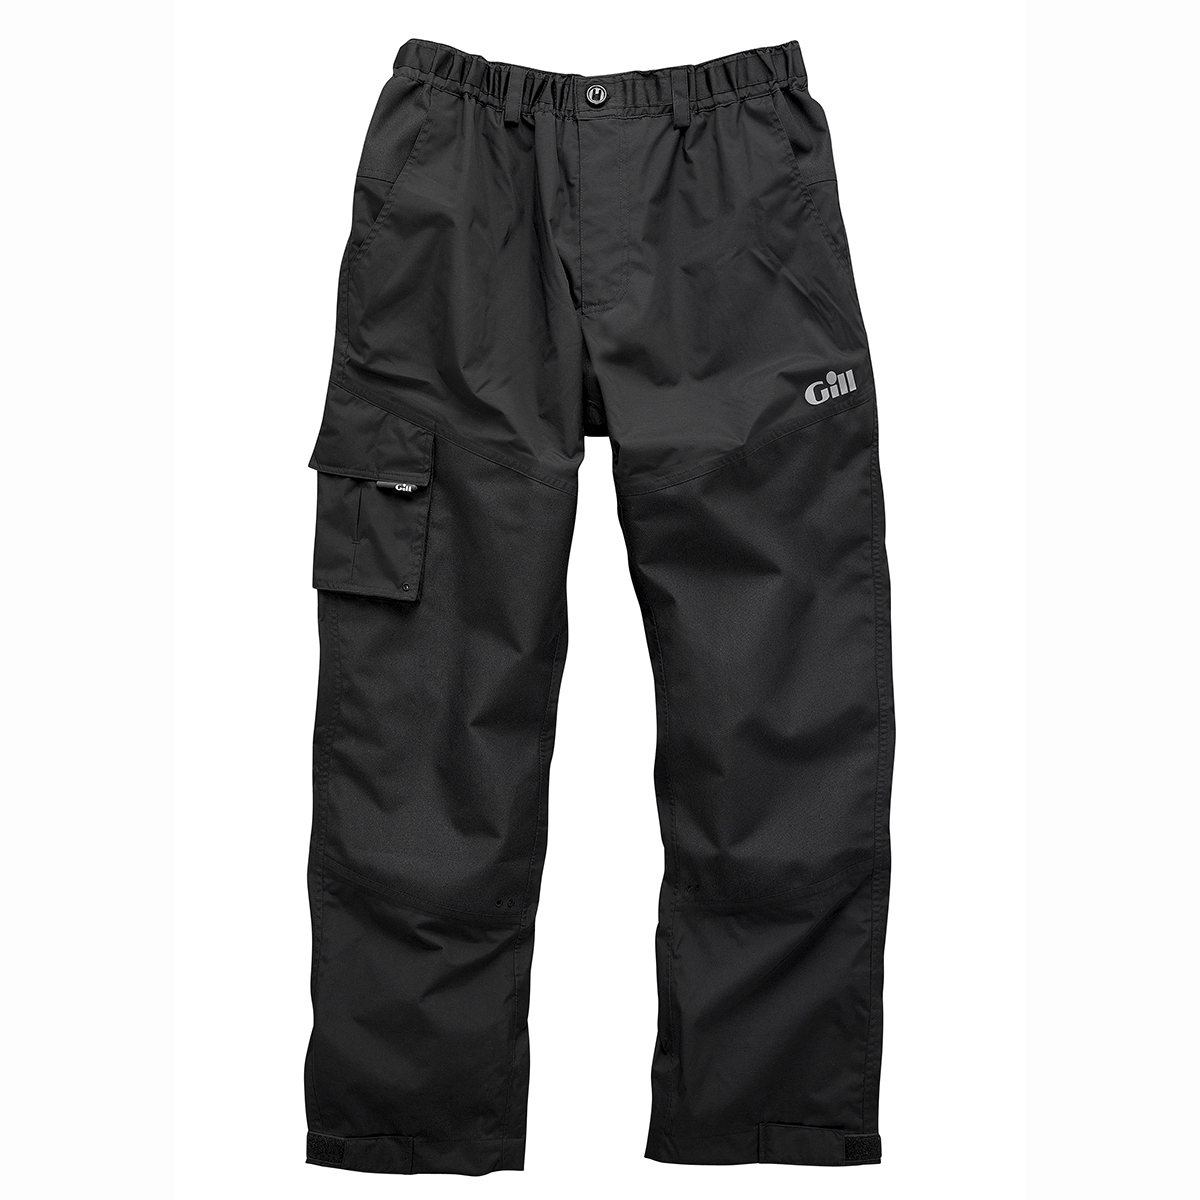 GILL WATERPROOF SAILING TROUSER (4362)